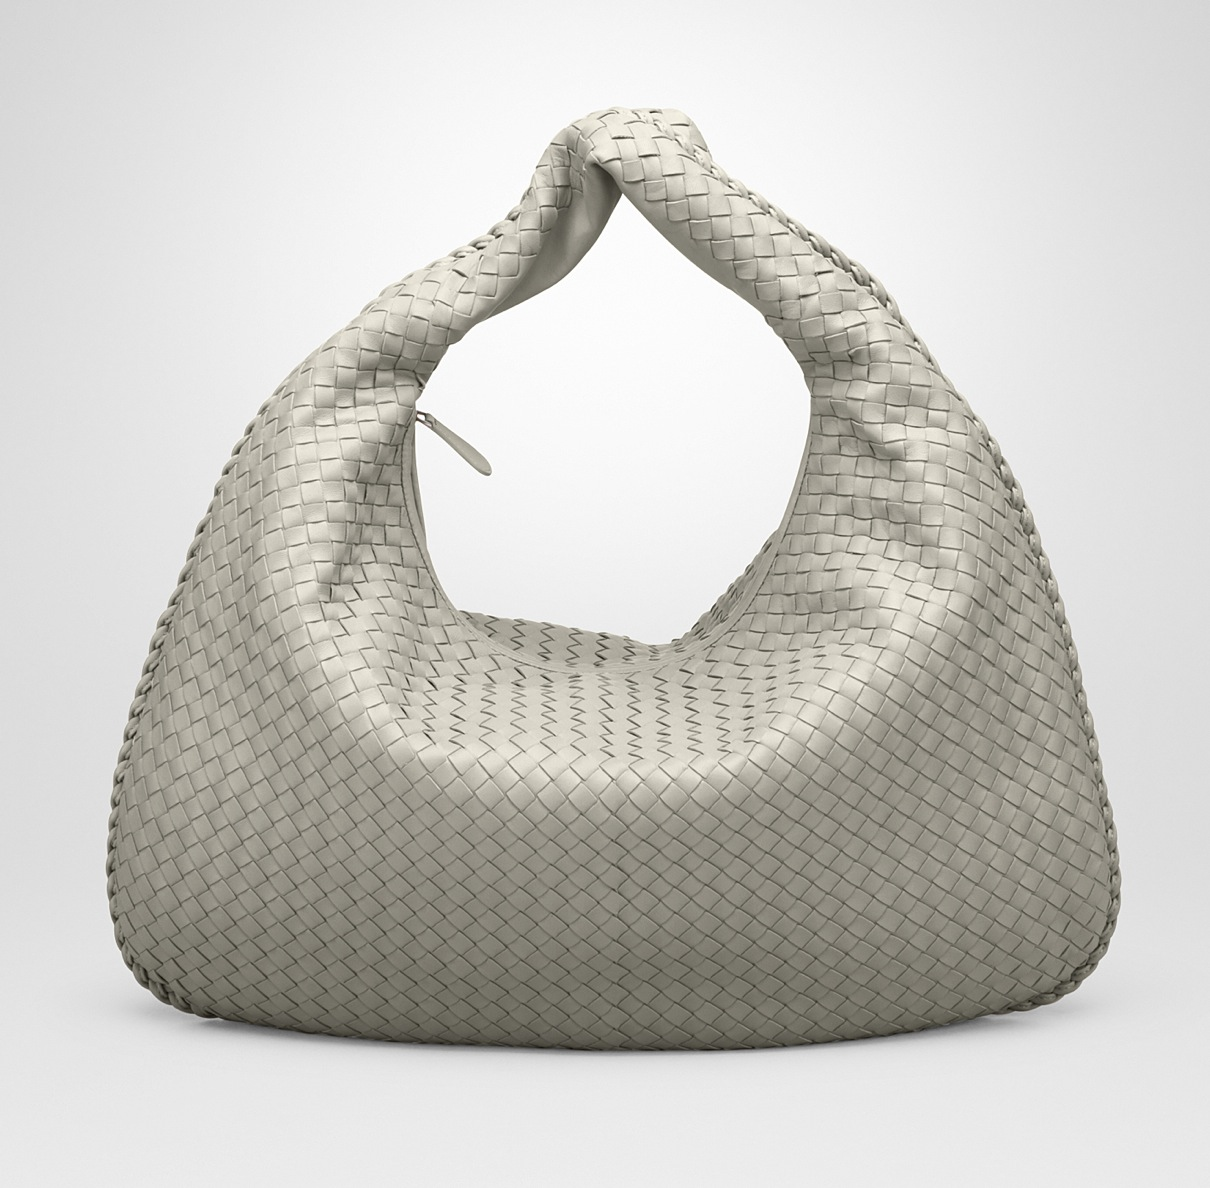 00653b419 Bottega Veneta New Sand Intrecciato Nappa Maxi Veneta Bag - Cruise 2015